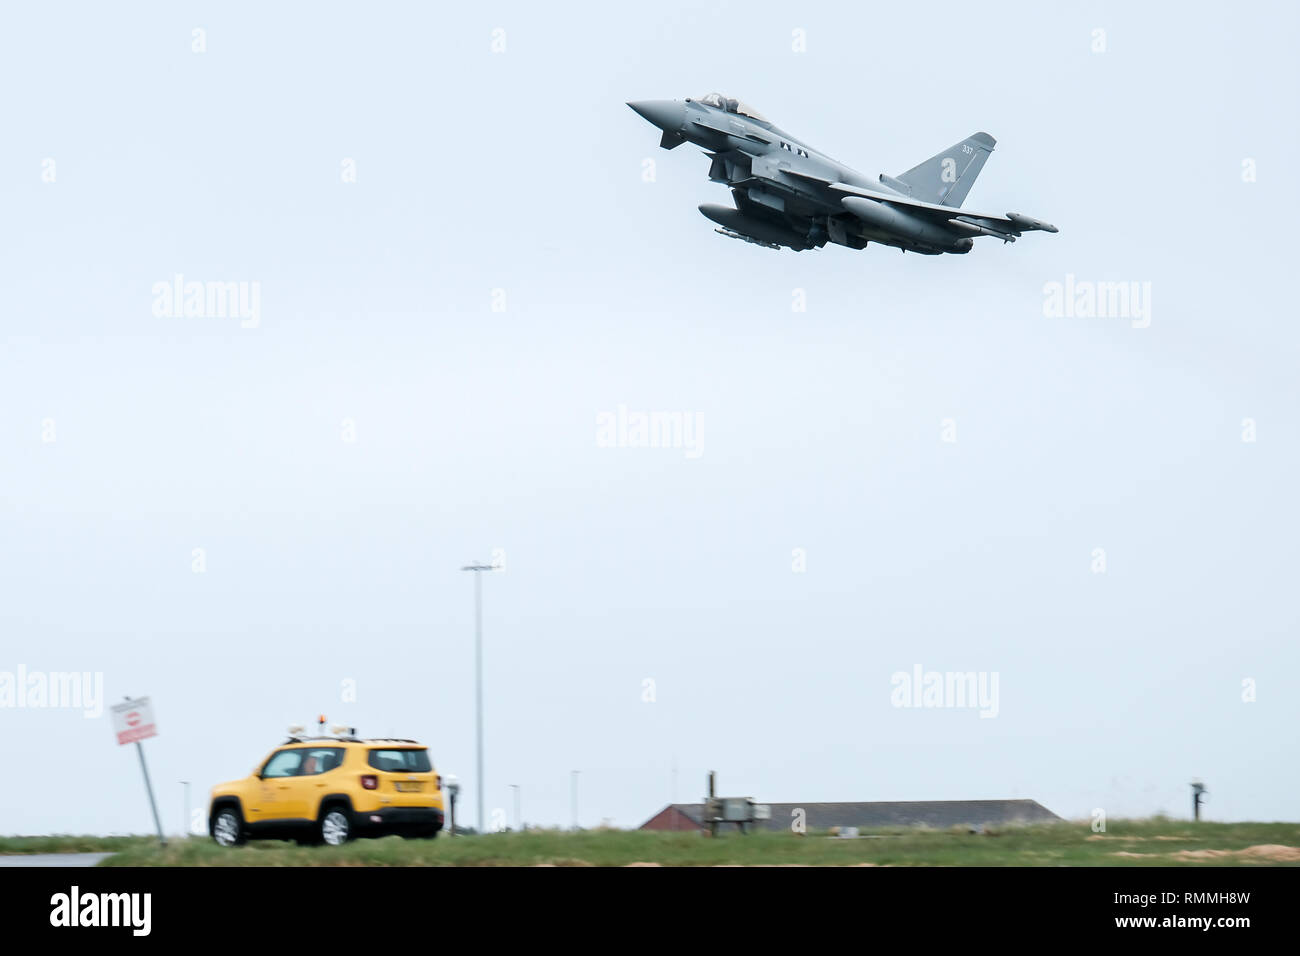 An RAF Tornado jet fighter taking off at RAF Lossiemouth base, Moray, Scotland - Stock Image